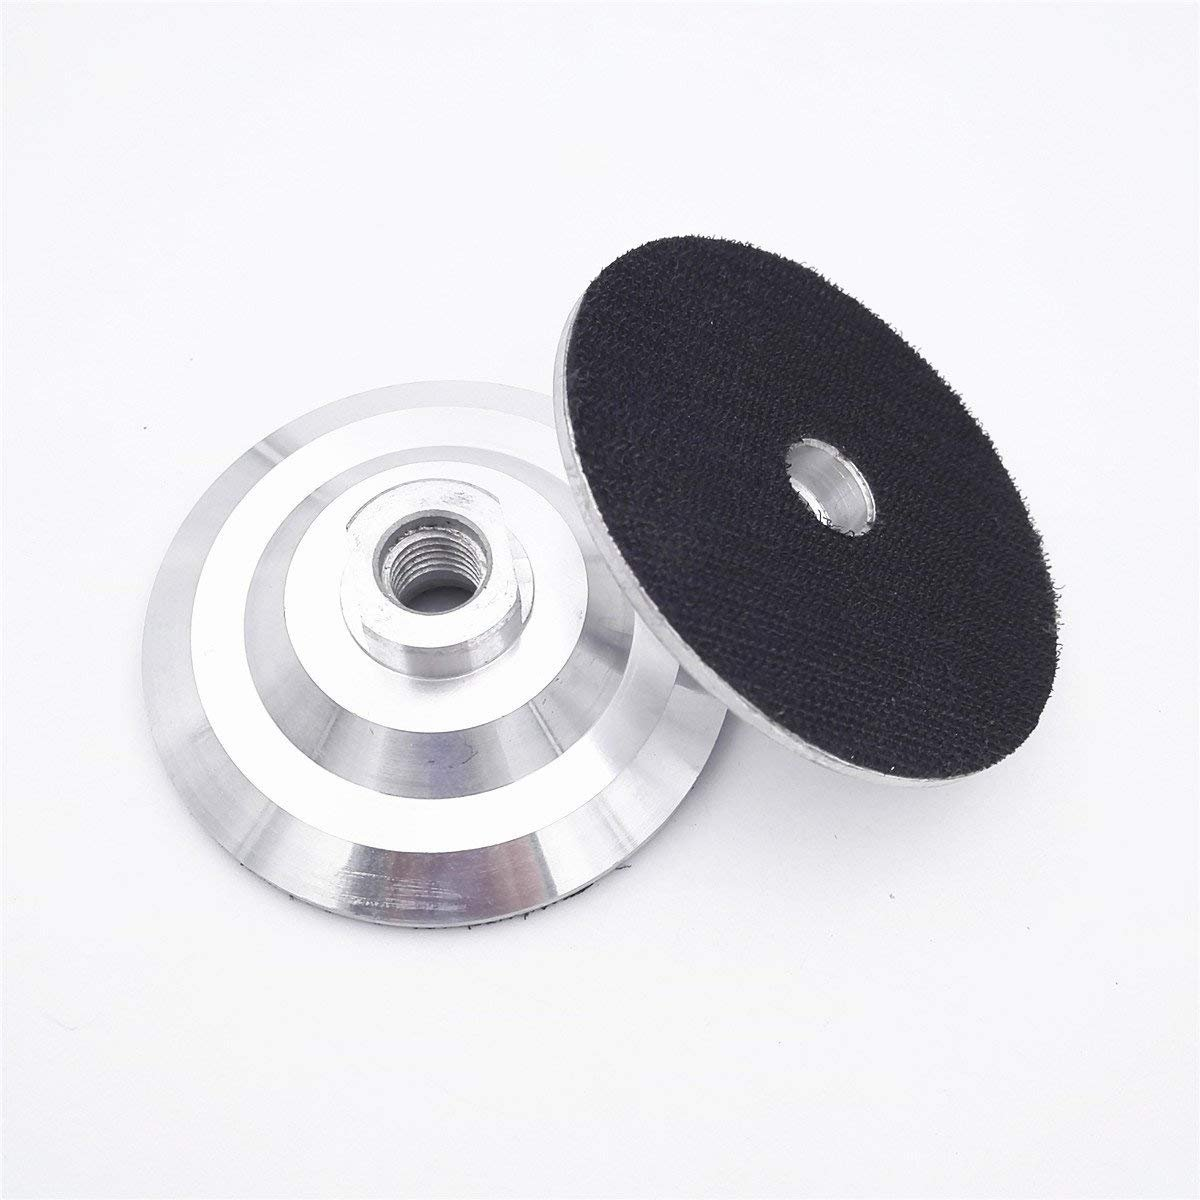 5 Pieces 5 INCH Aluminum based backer 5'' Back pad for diamond polishing pads 5/8-11 Thread Velcro backing pad for grinder wet polisher terrazzo sander floor polishing machine triad planetary polisher